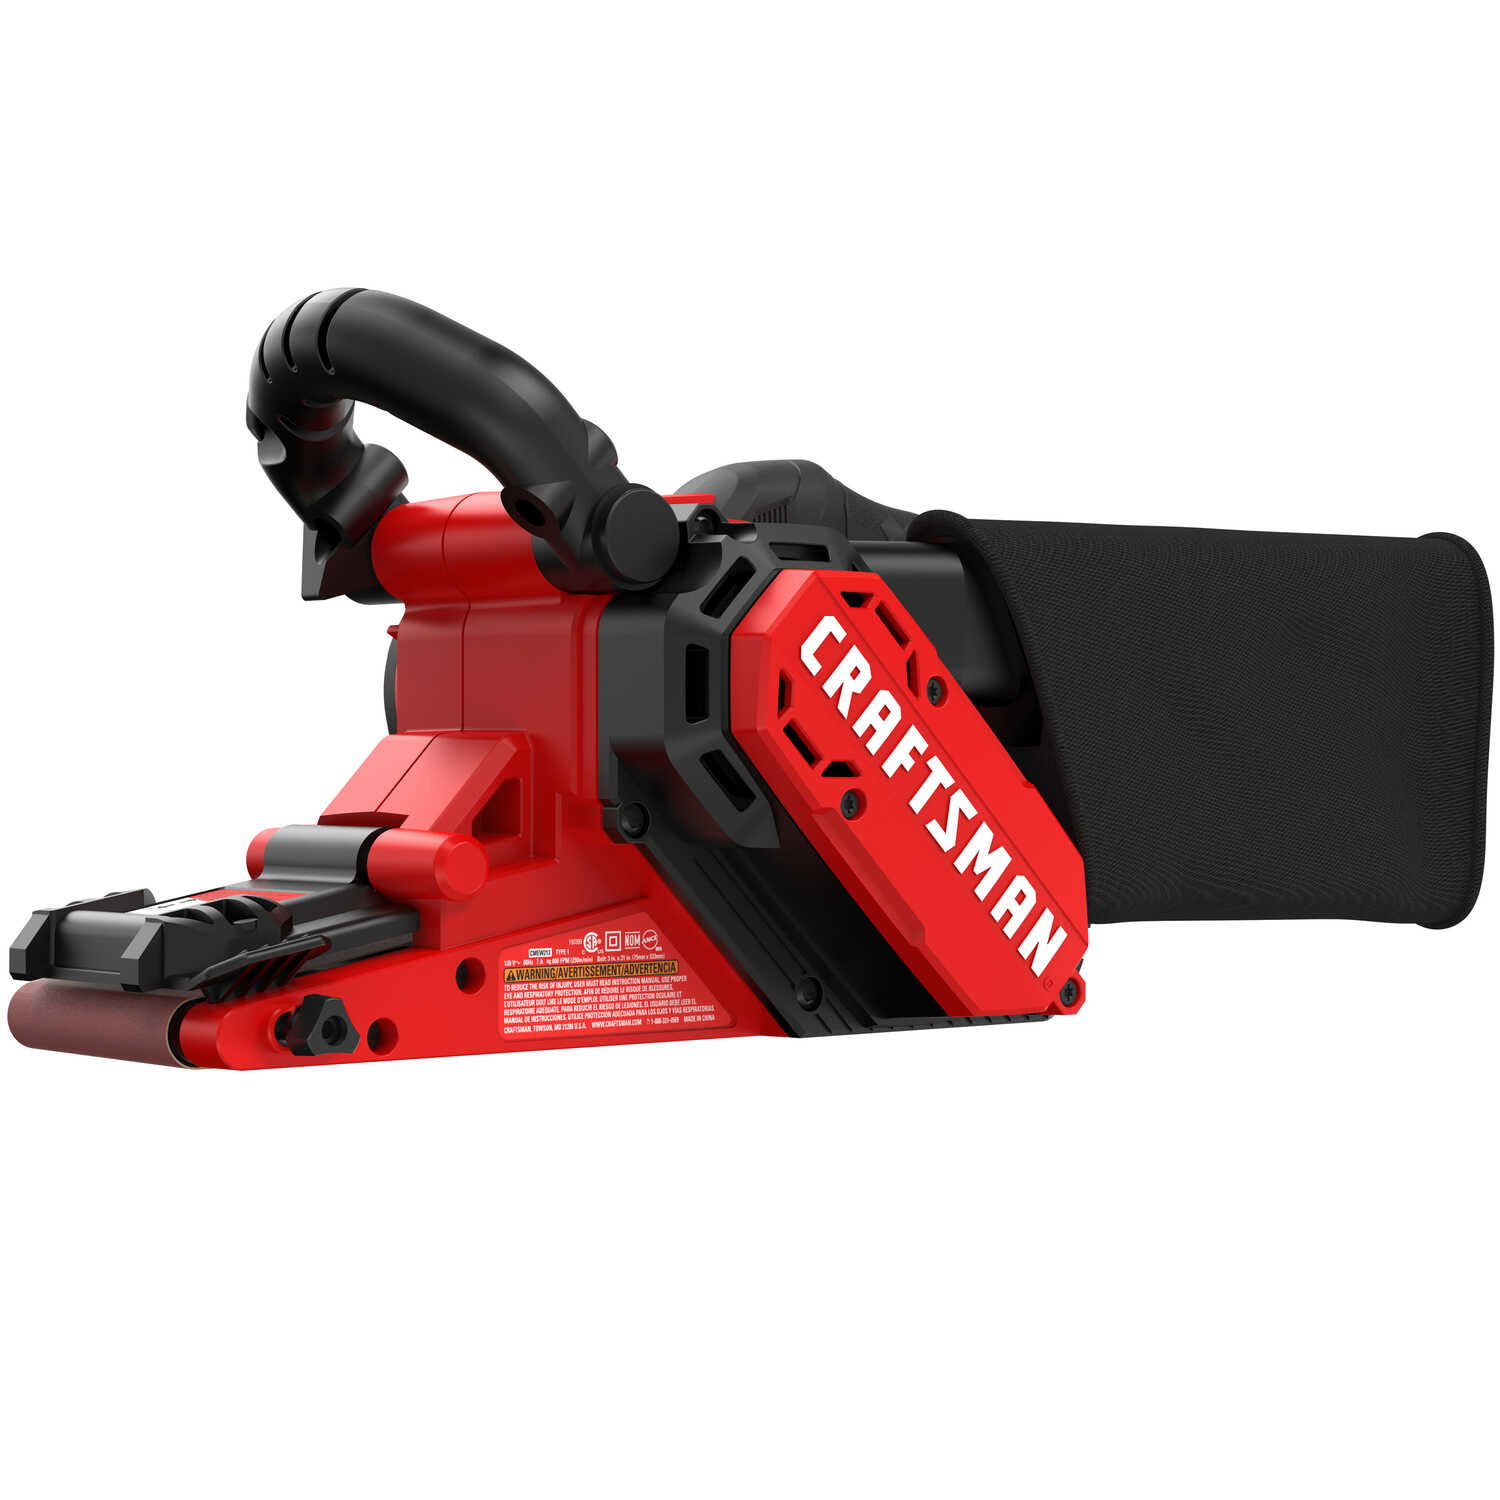 Craftsman  21 in. L x 3 in. W Corded  Belt Sander  7 amps 800 FPM